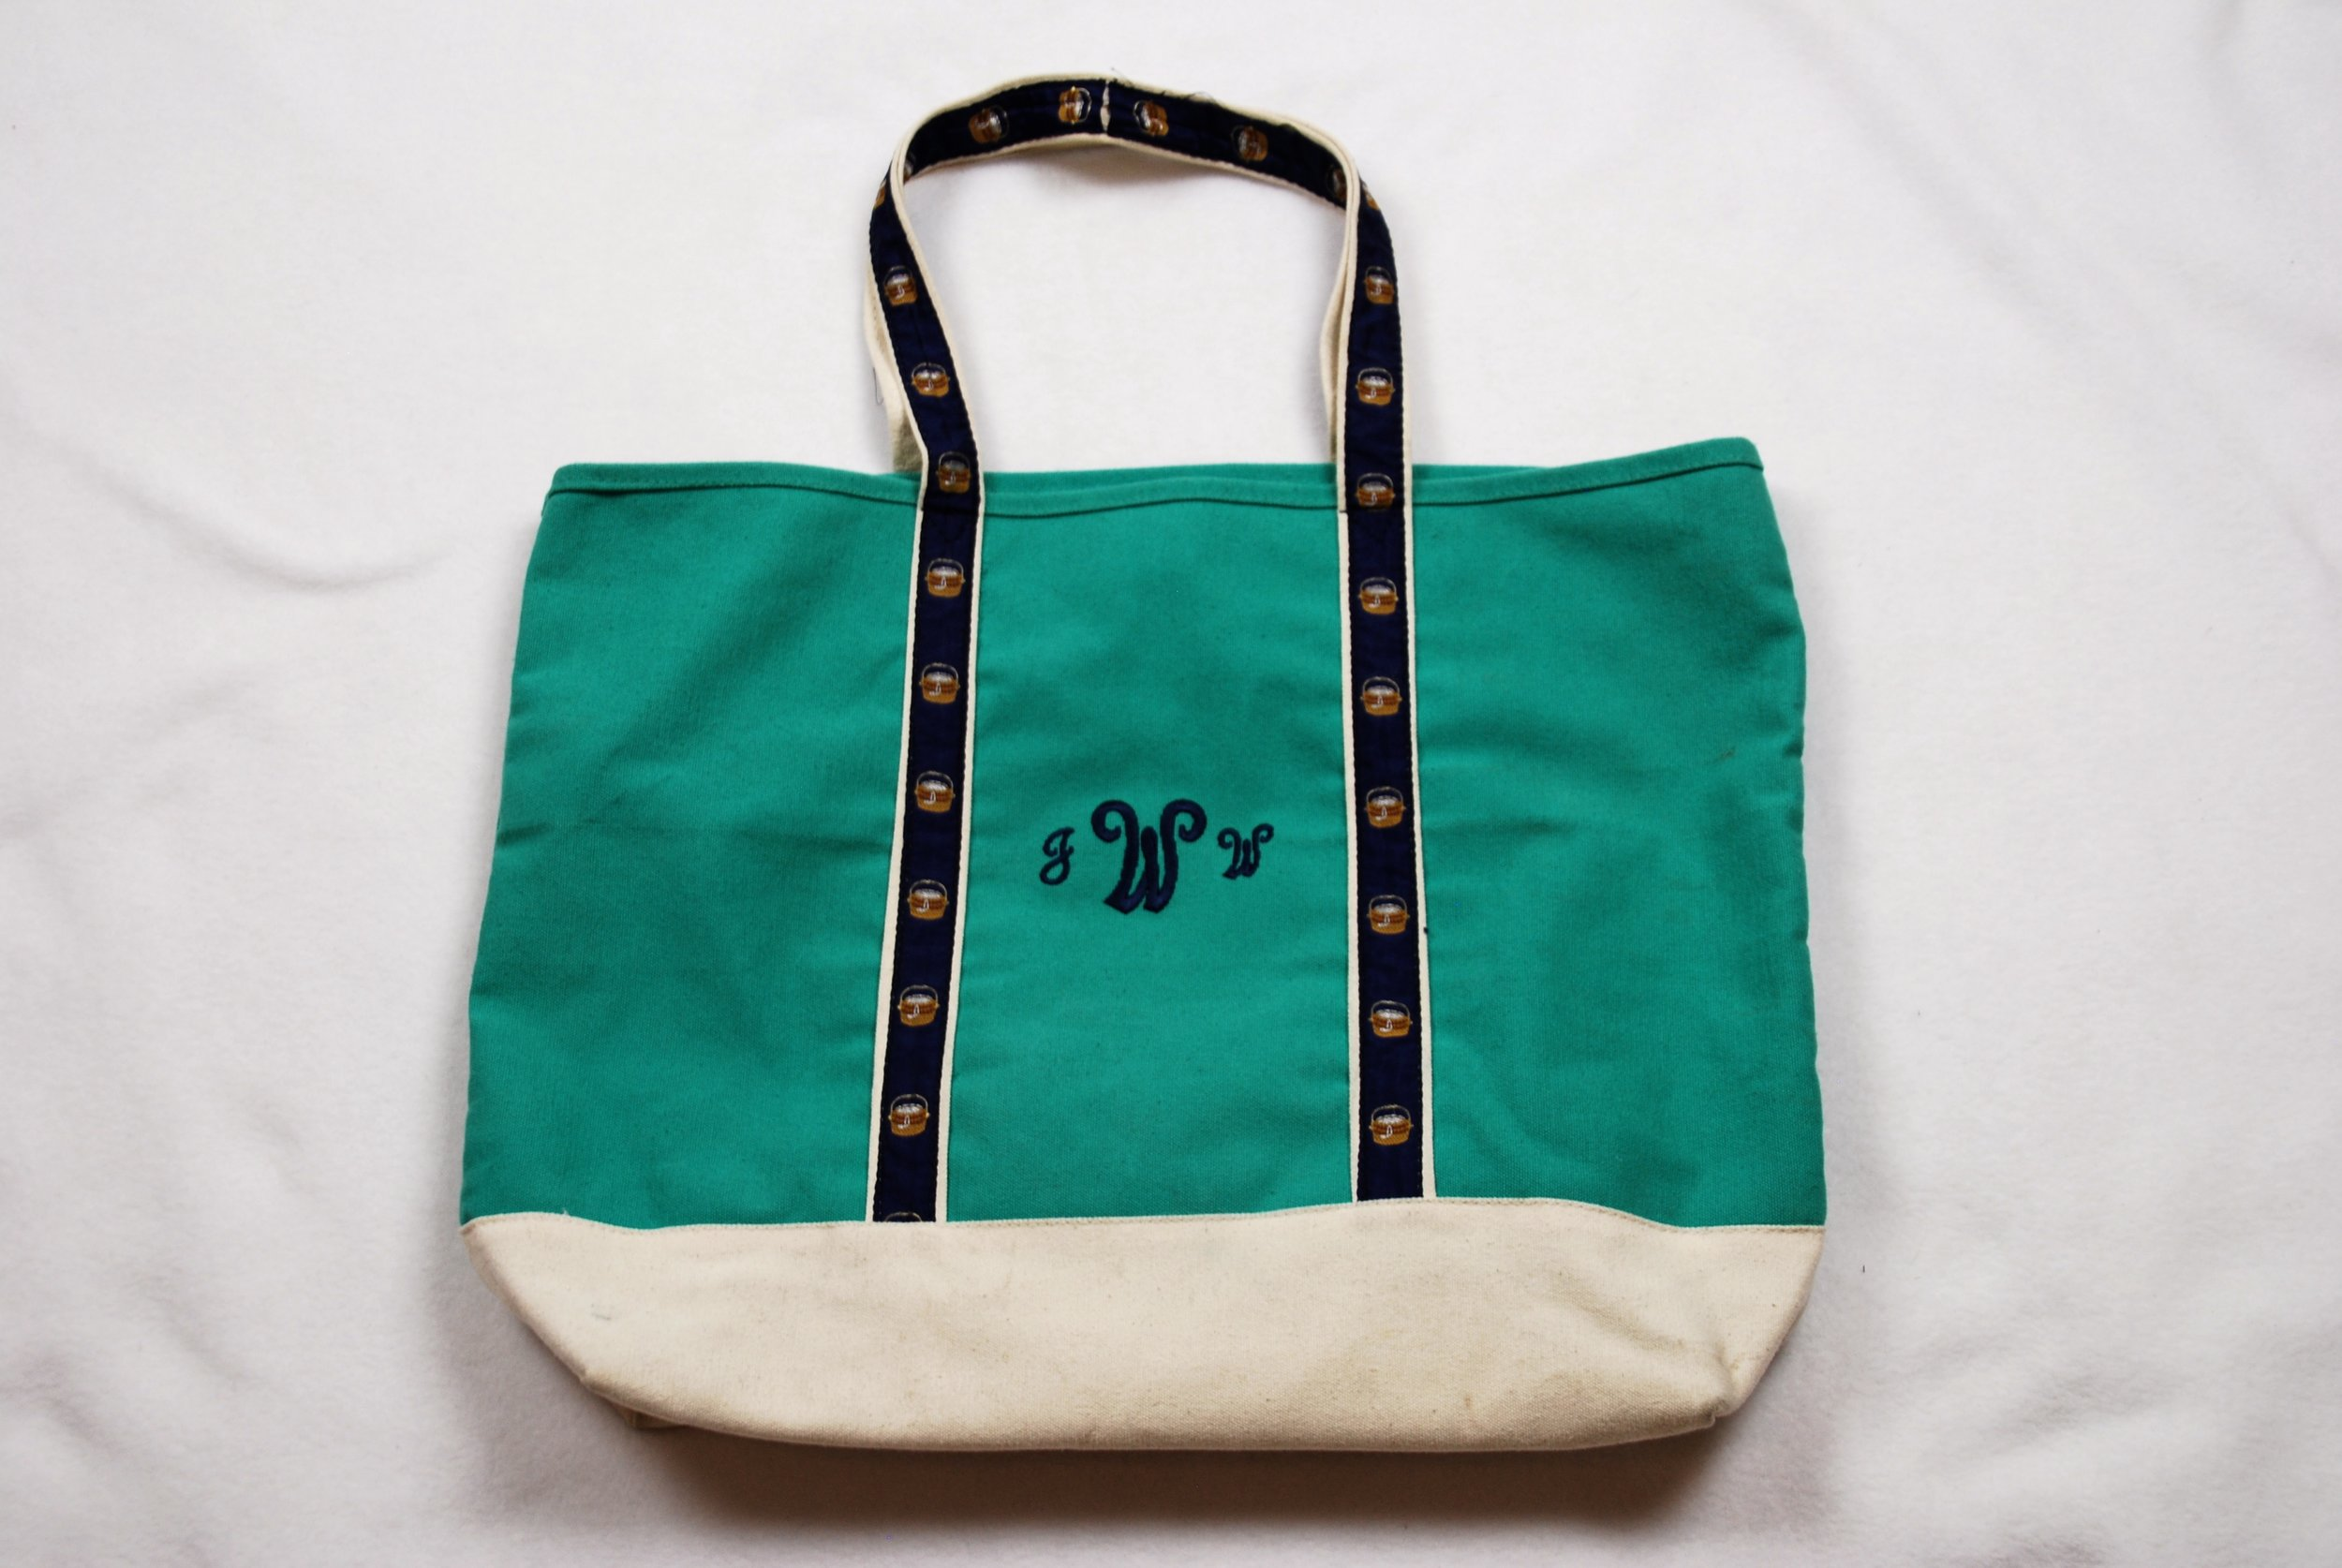 Embroidered monogram on canvas boat bag.